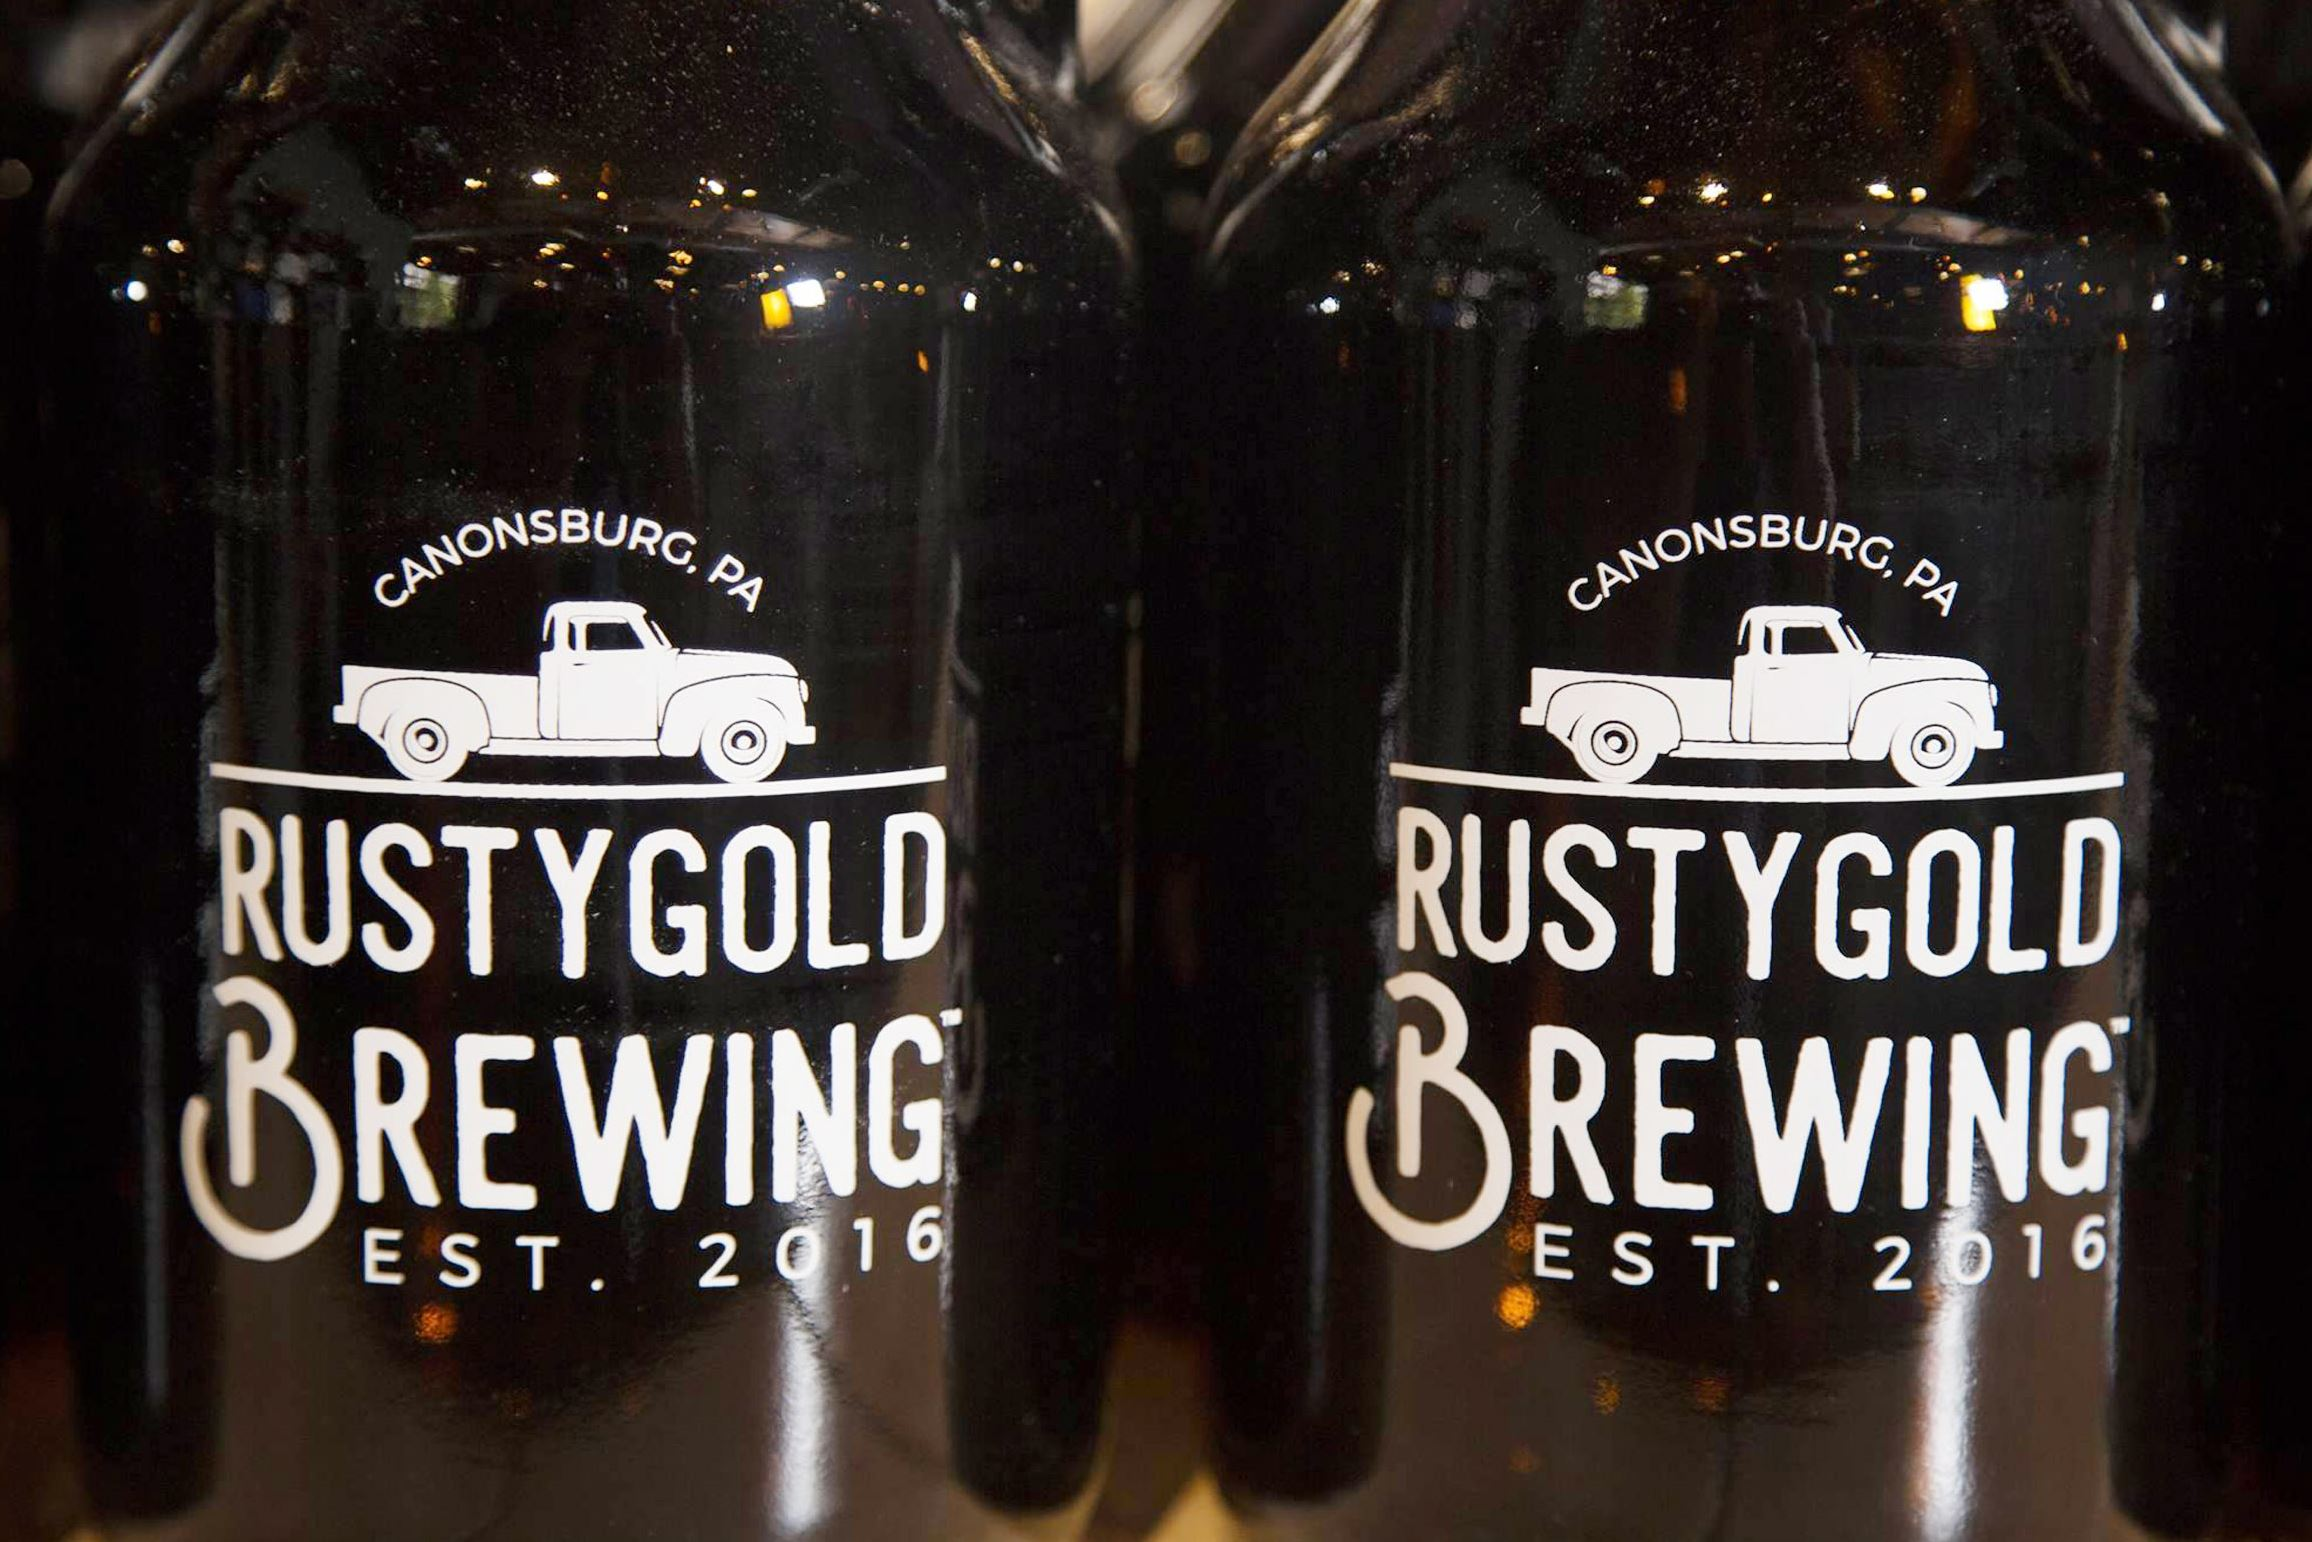 rusty gold brewing 4-4 Growlers at Rusty Gold Brewing Co. in Canonsburg.